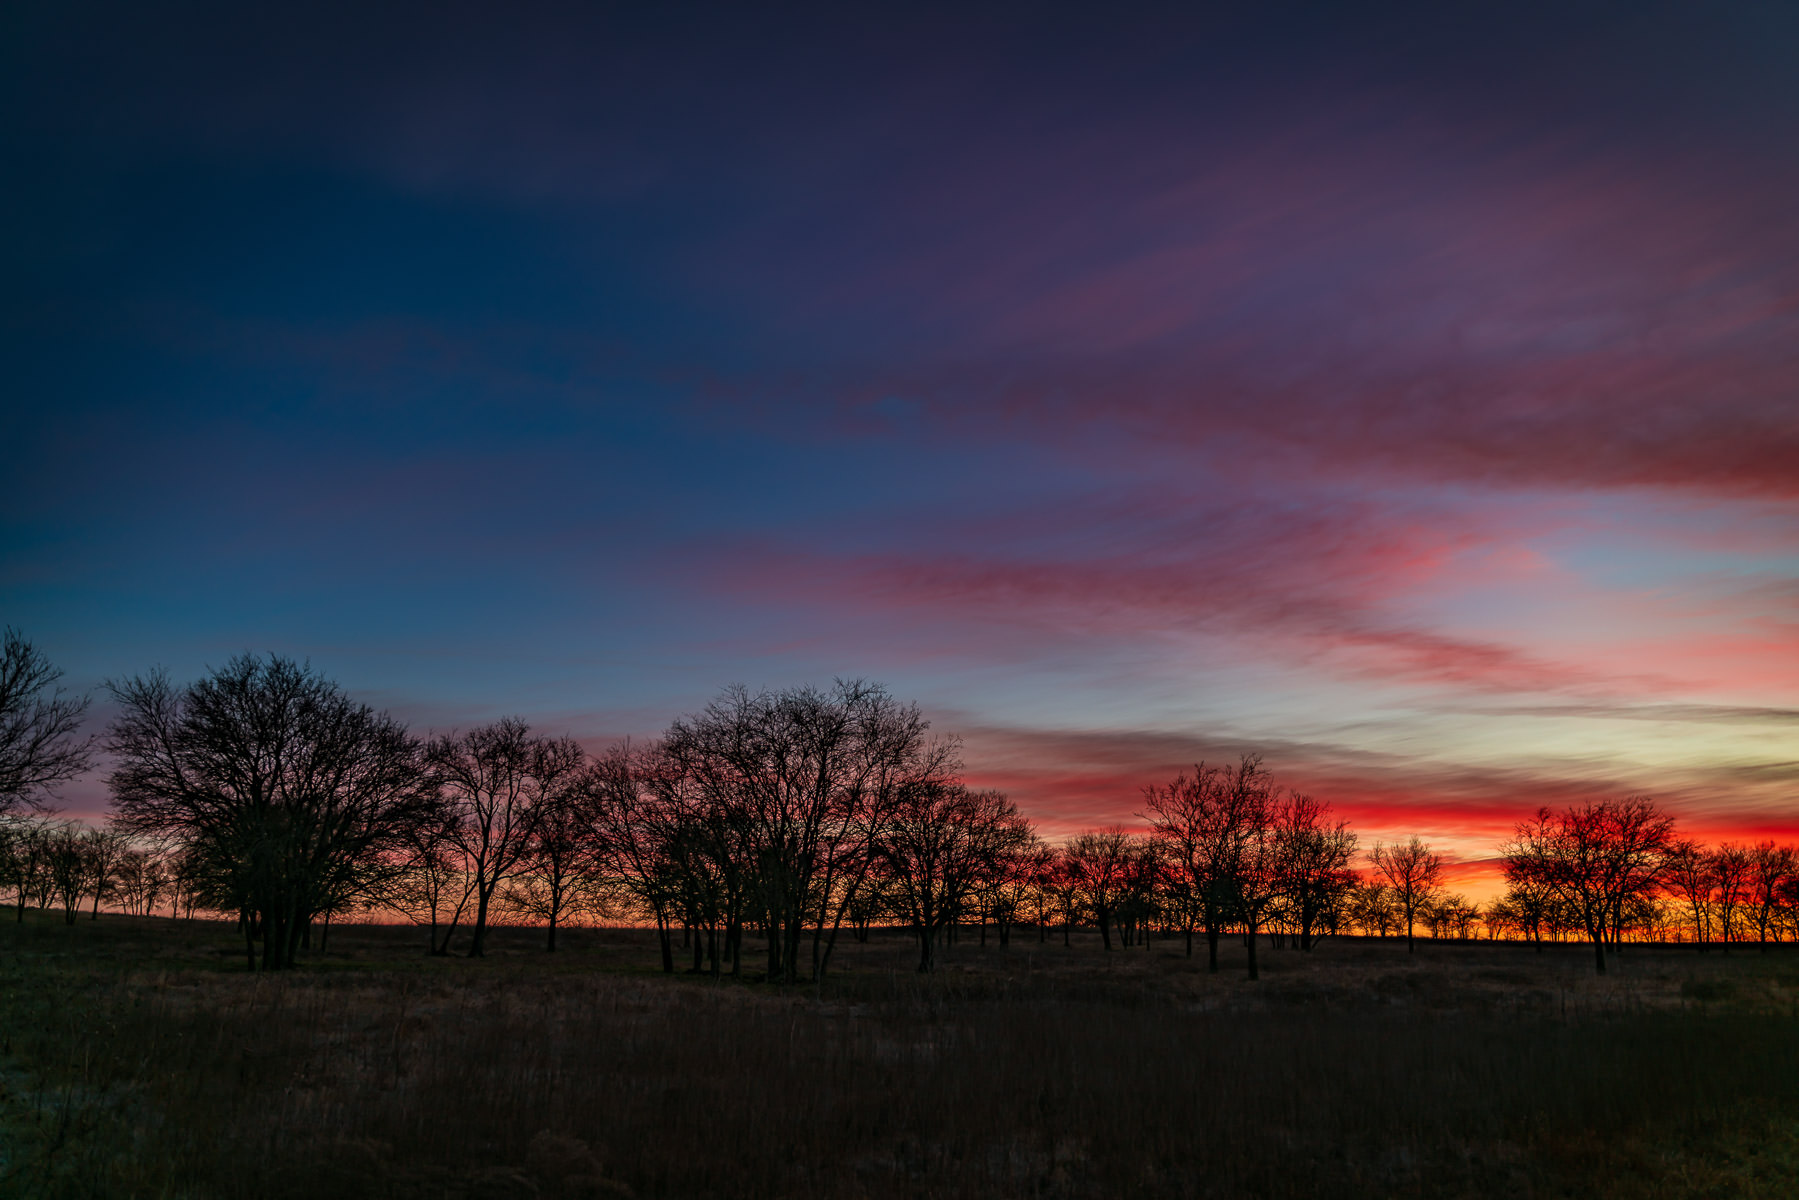 The sun rises on a field of trees near Pottsboro, Texas.